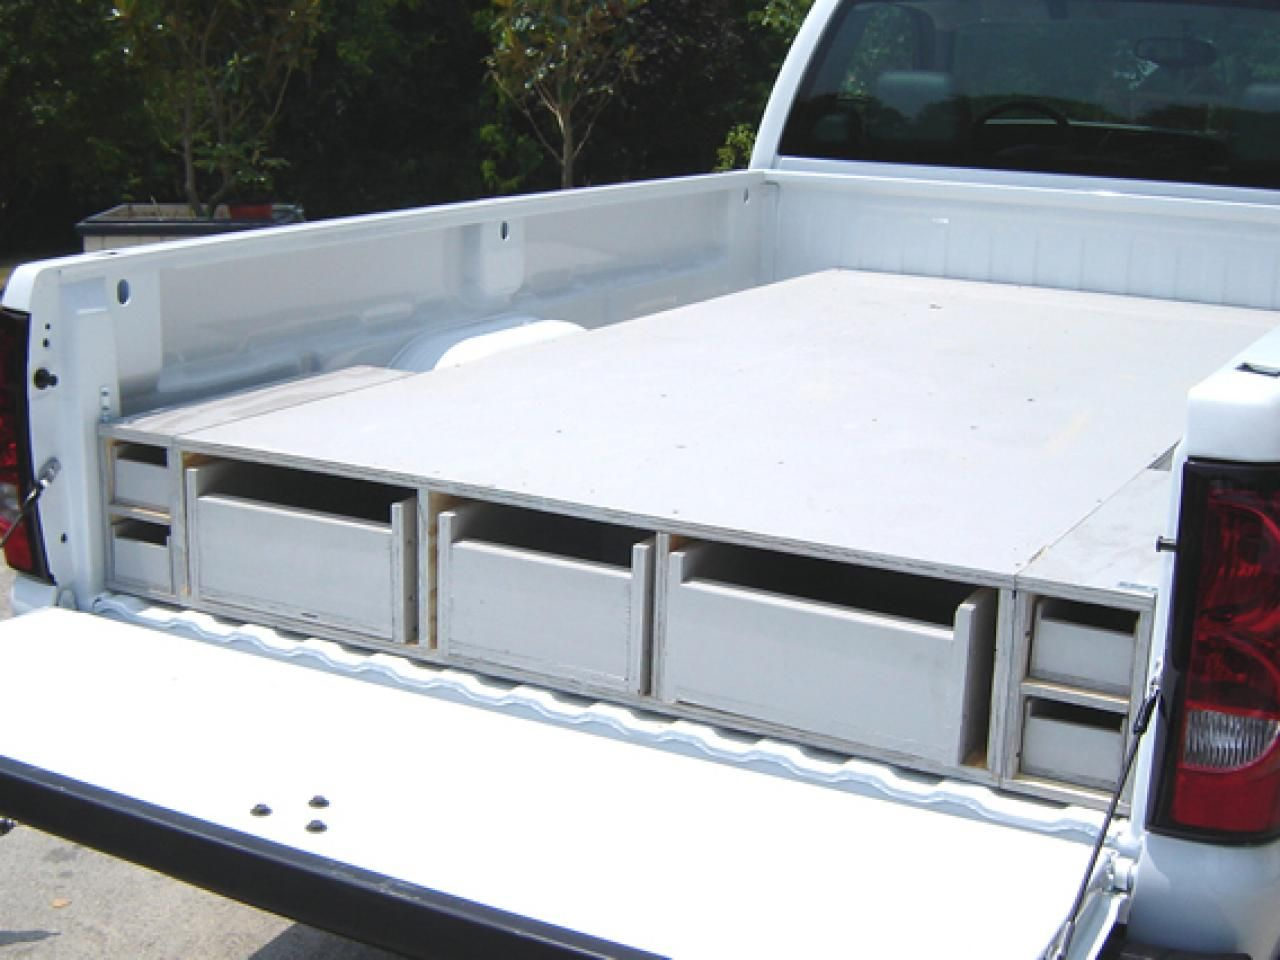 How to Install a Truck Bed Storage System Truck bed